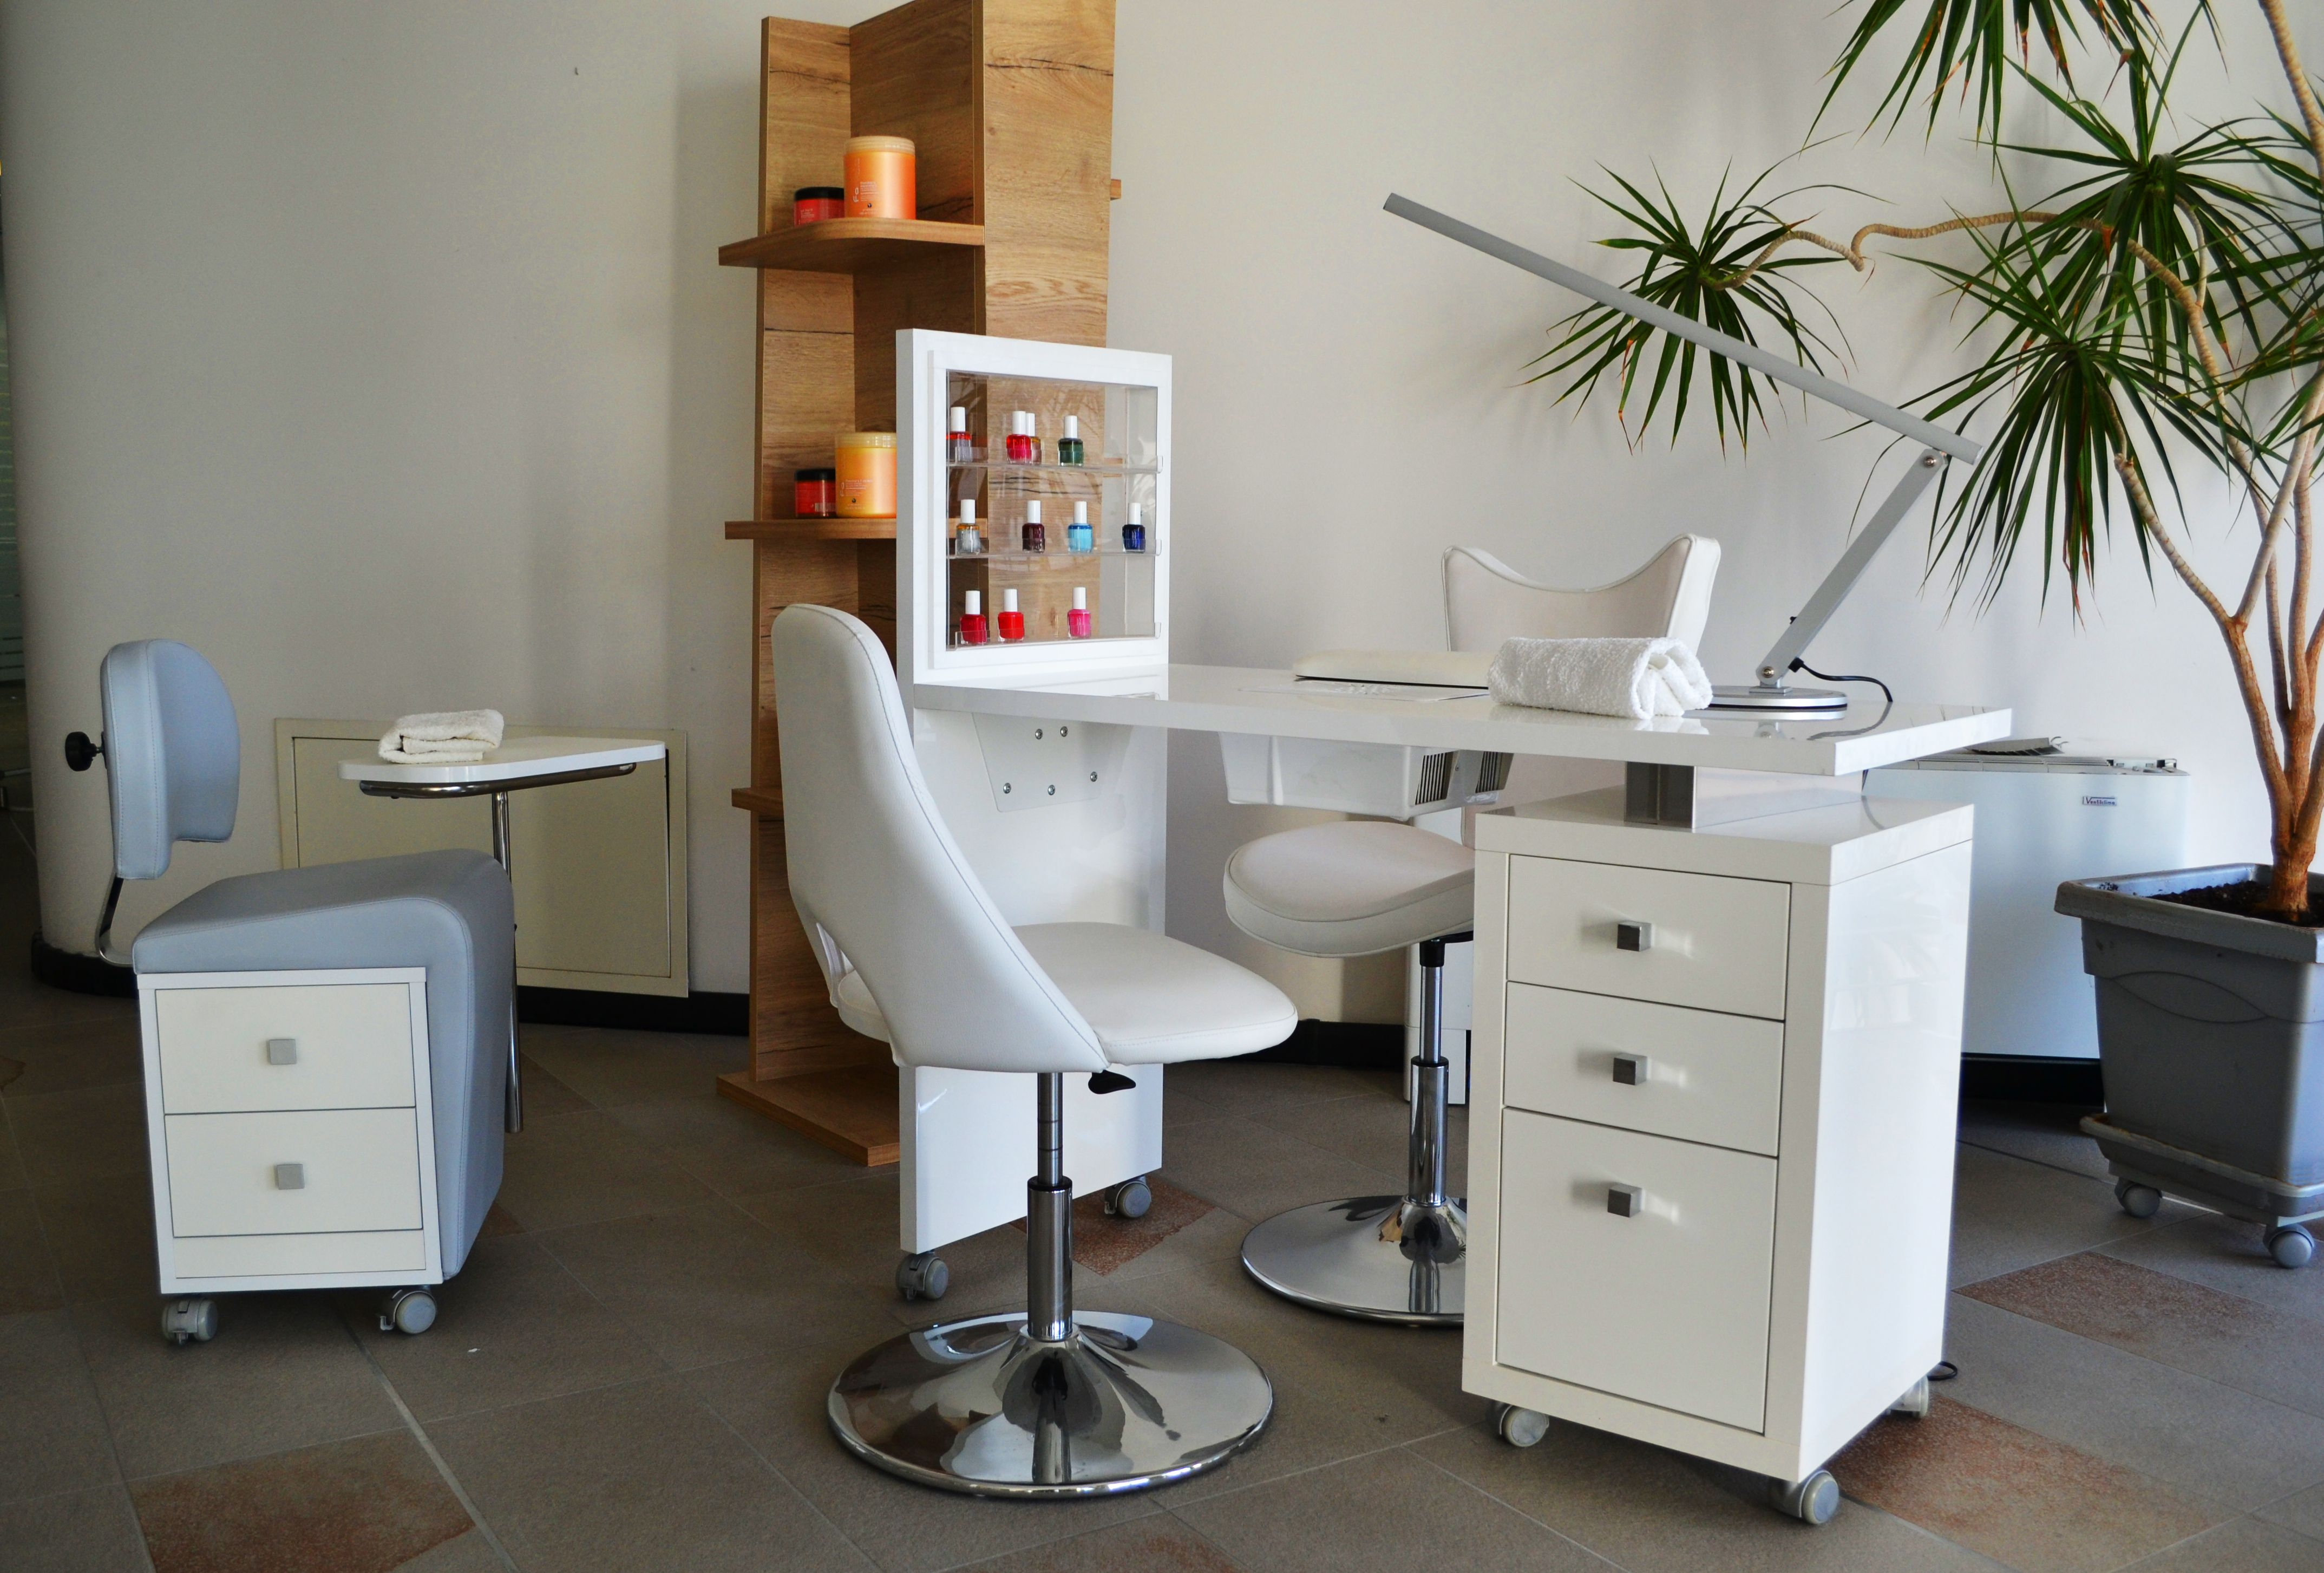 Elegant Manicure Table With Nail Polish Display It Can Be Used As A Single Station Or Linked Together To Create A Nail B Manicure Table Square Tables Manicure